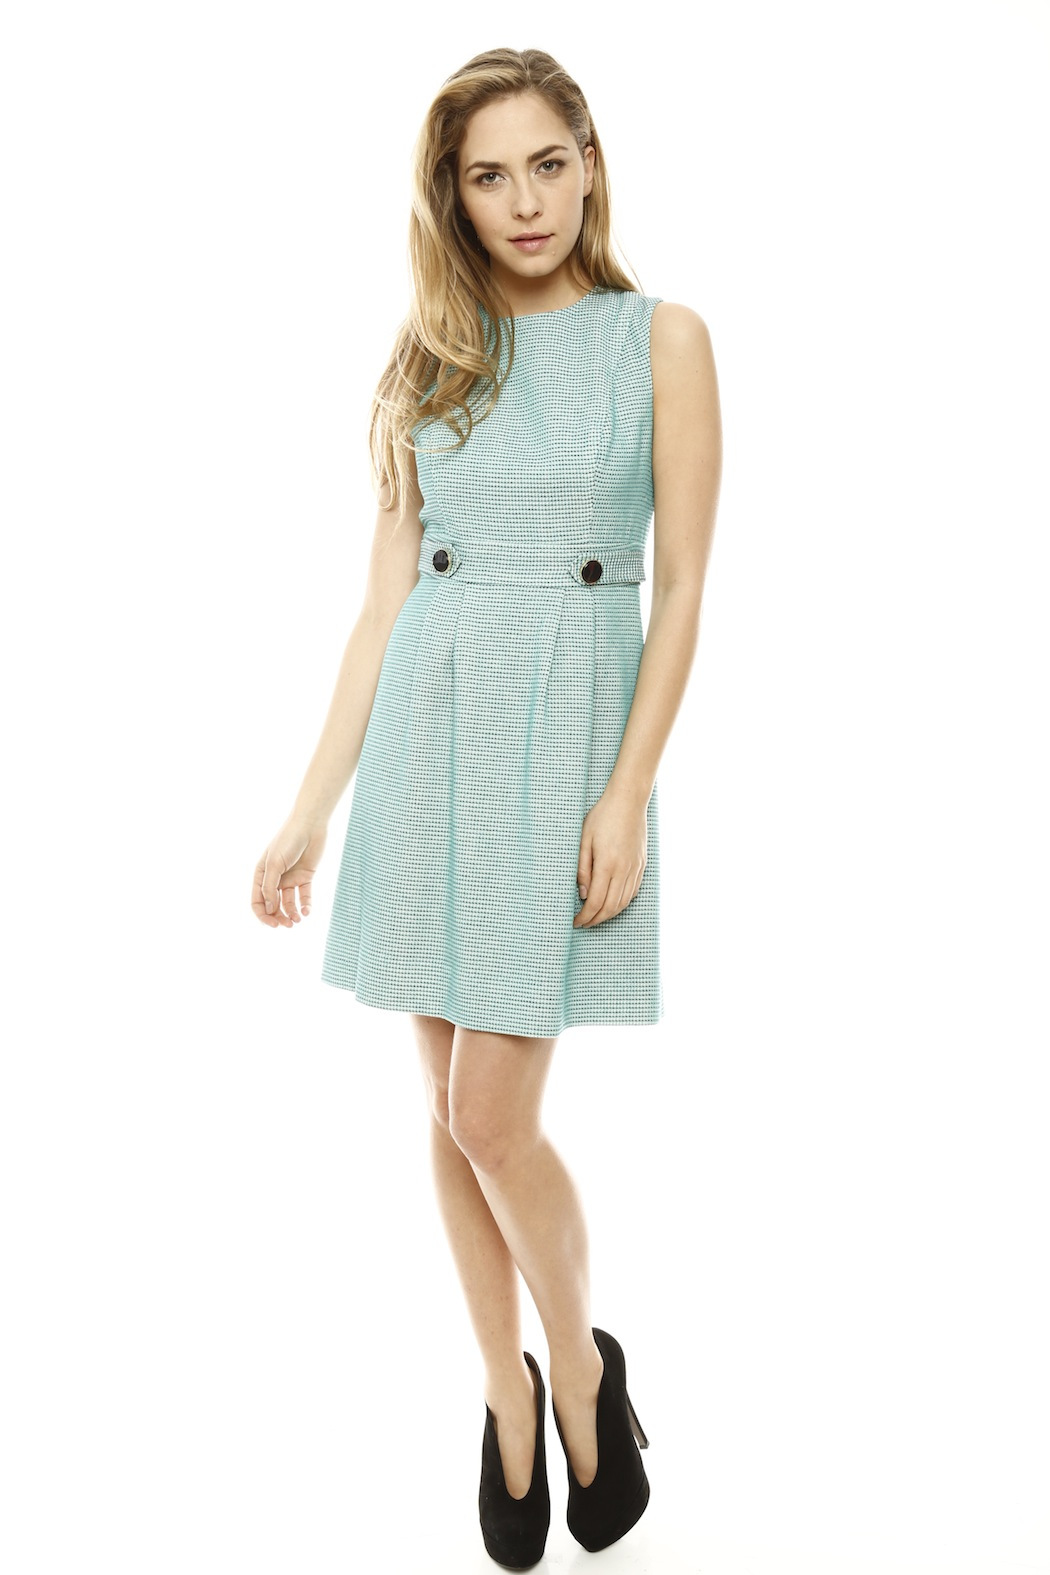 Shoshanna Tweed Dress from Georgetown by Urban Chic — Shoptiques